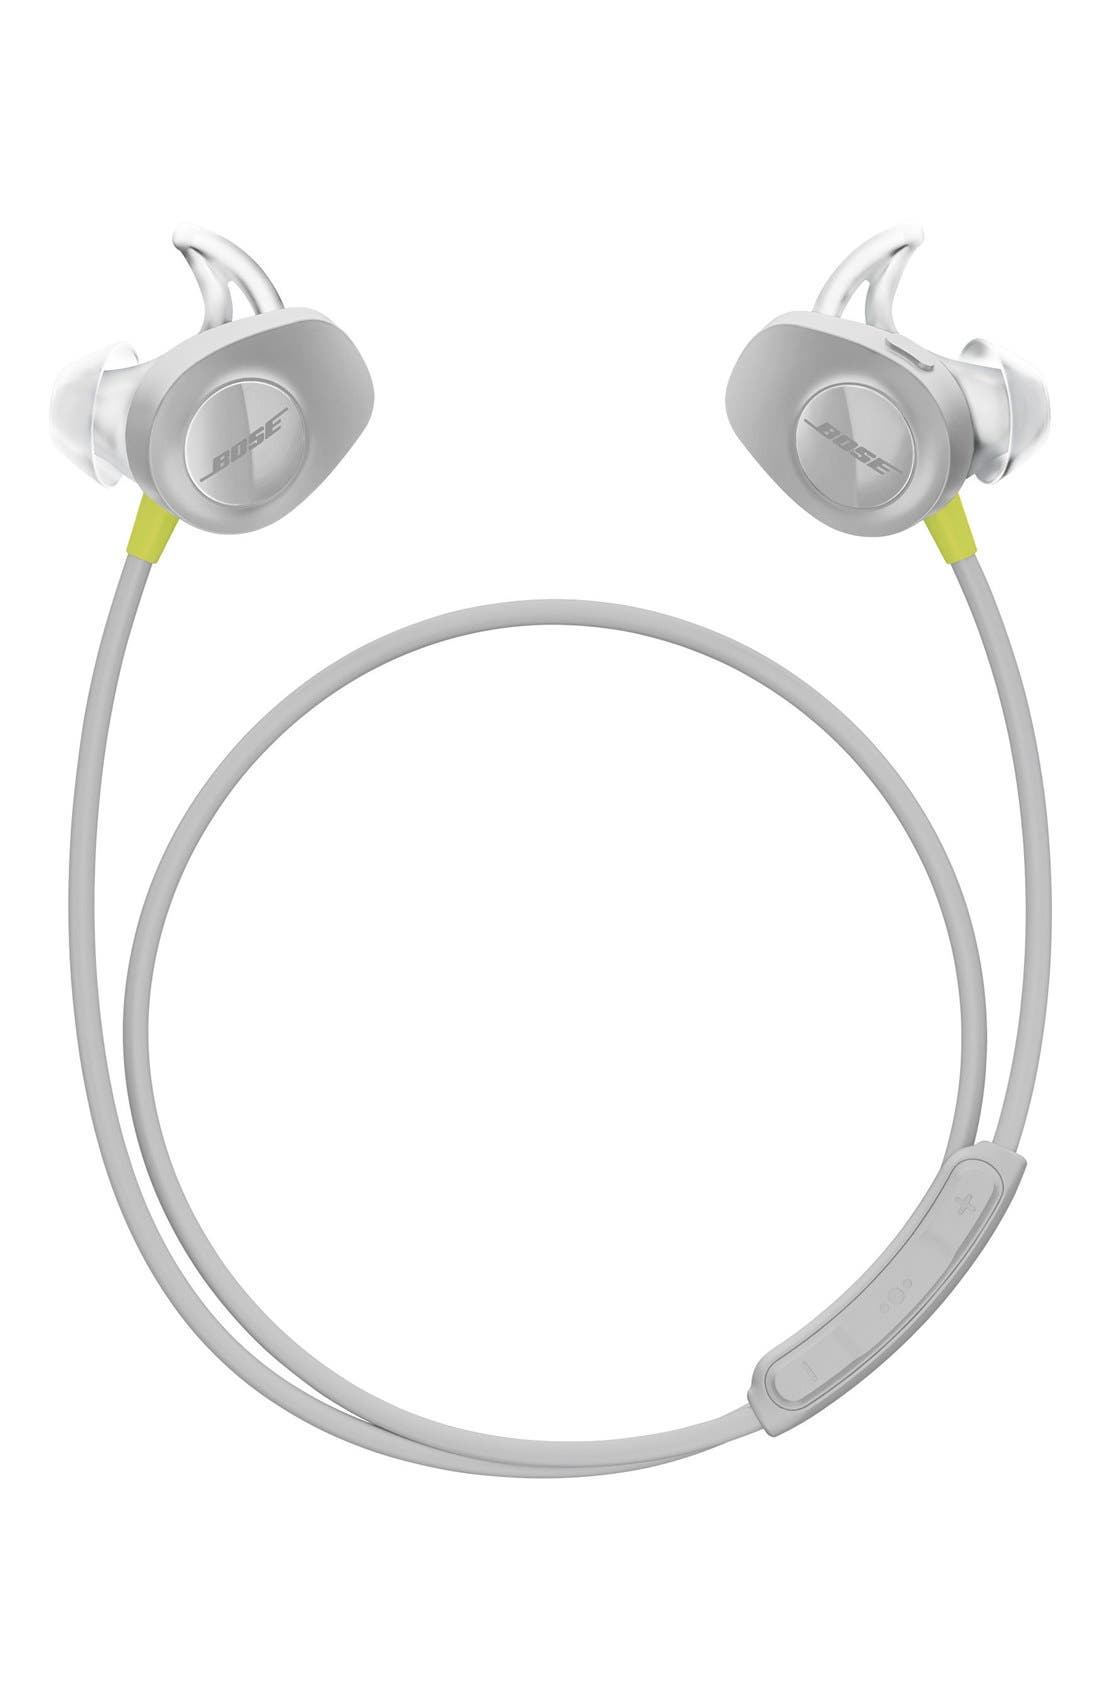 Main Image - Bose® SoundSport® In-Ear Bluetooth® Headphones